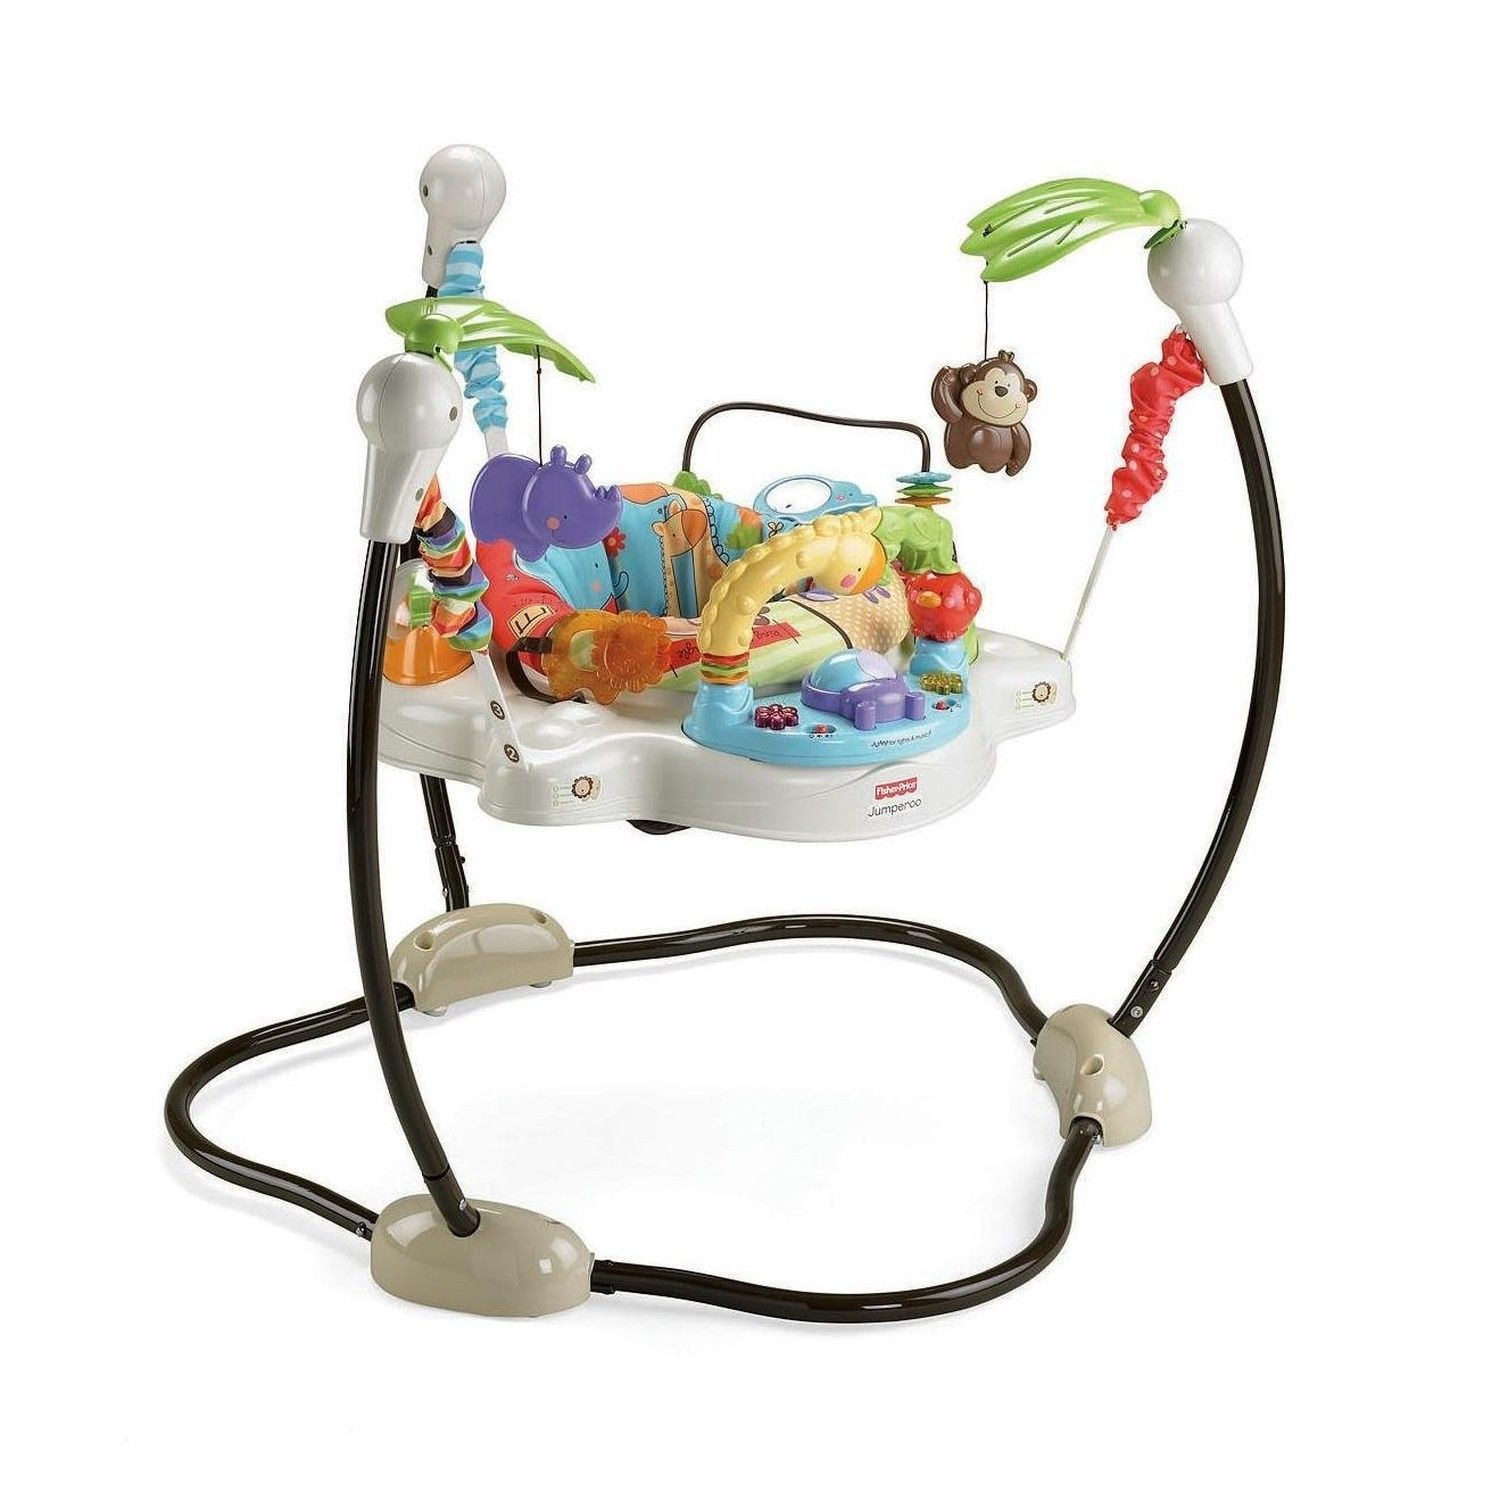 Details about Fisher Price Luv U Zoo Jumperoo Baby Jumper